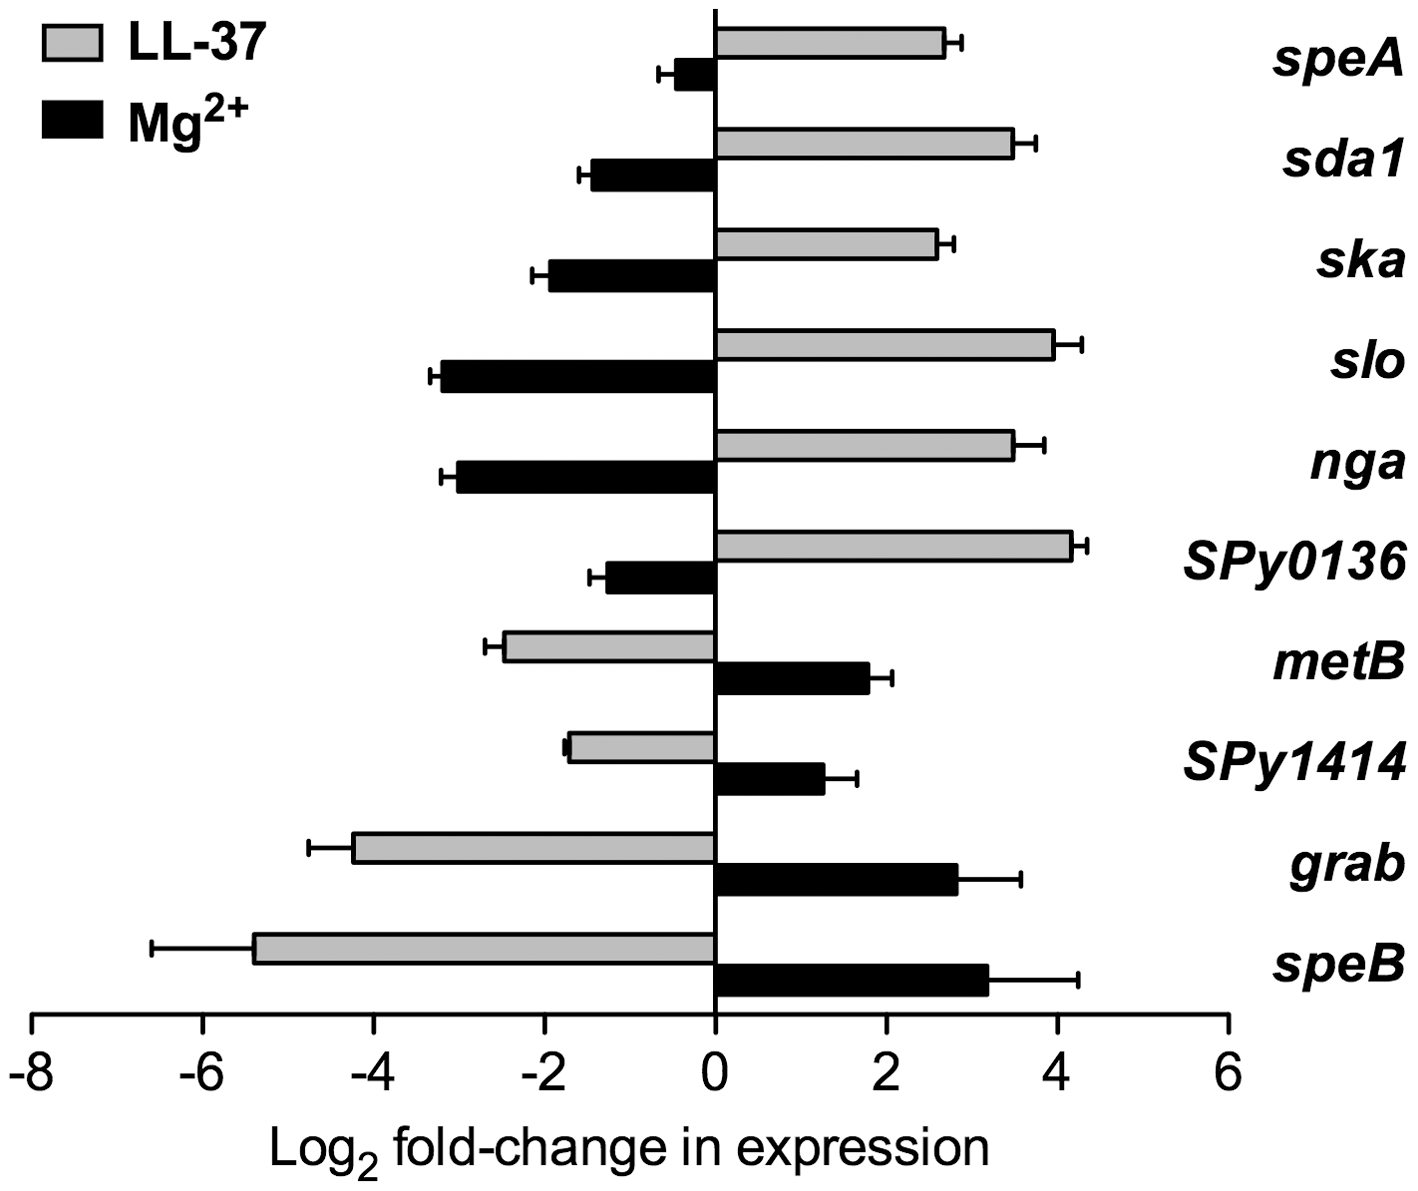 LL-37 and Mg<sup>2+</sup> have opposite effects on expression of CsrRS-regulated genes.